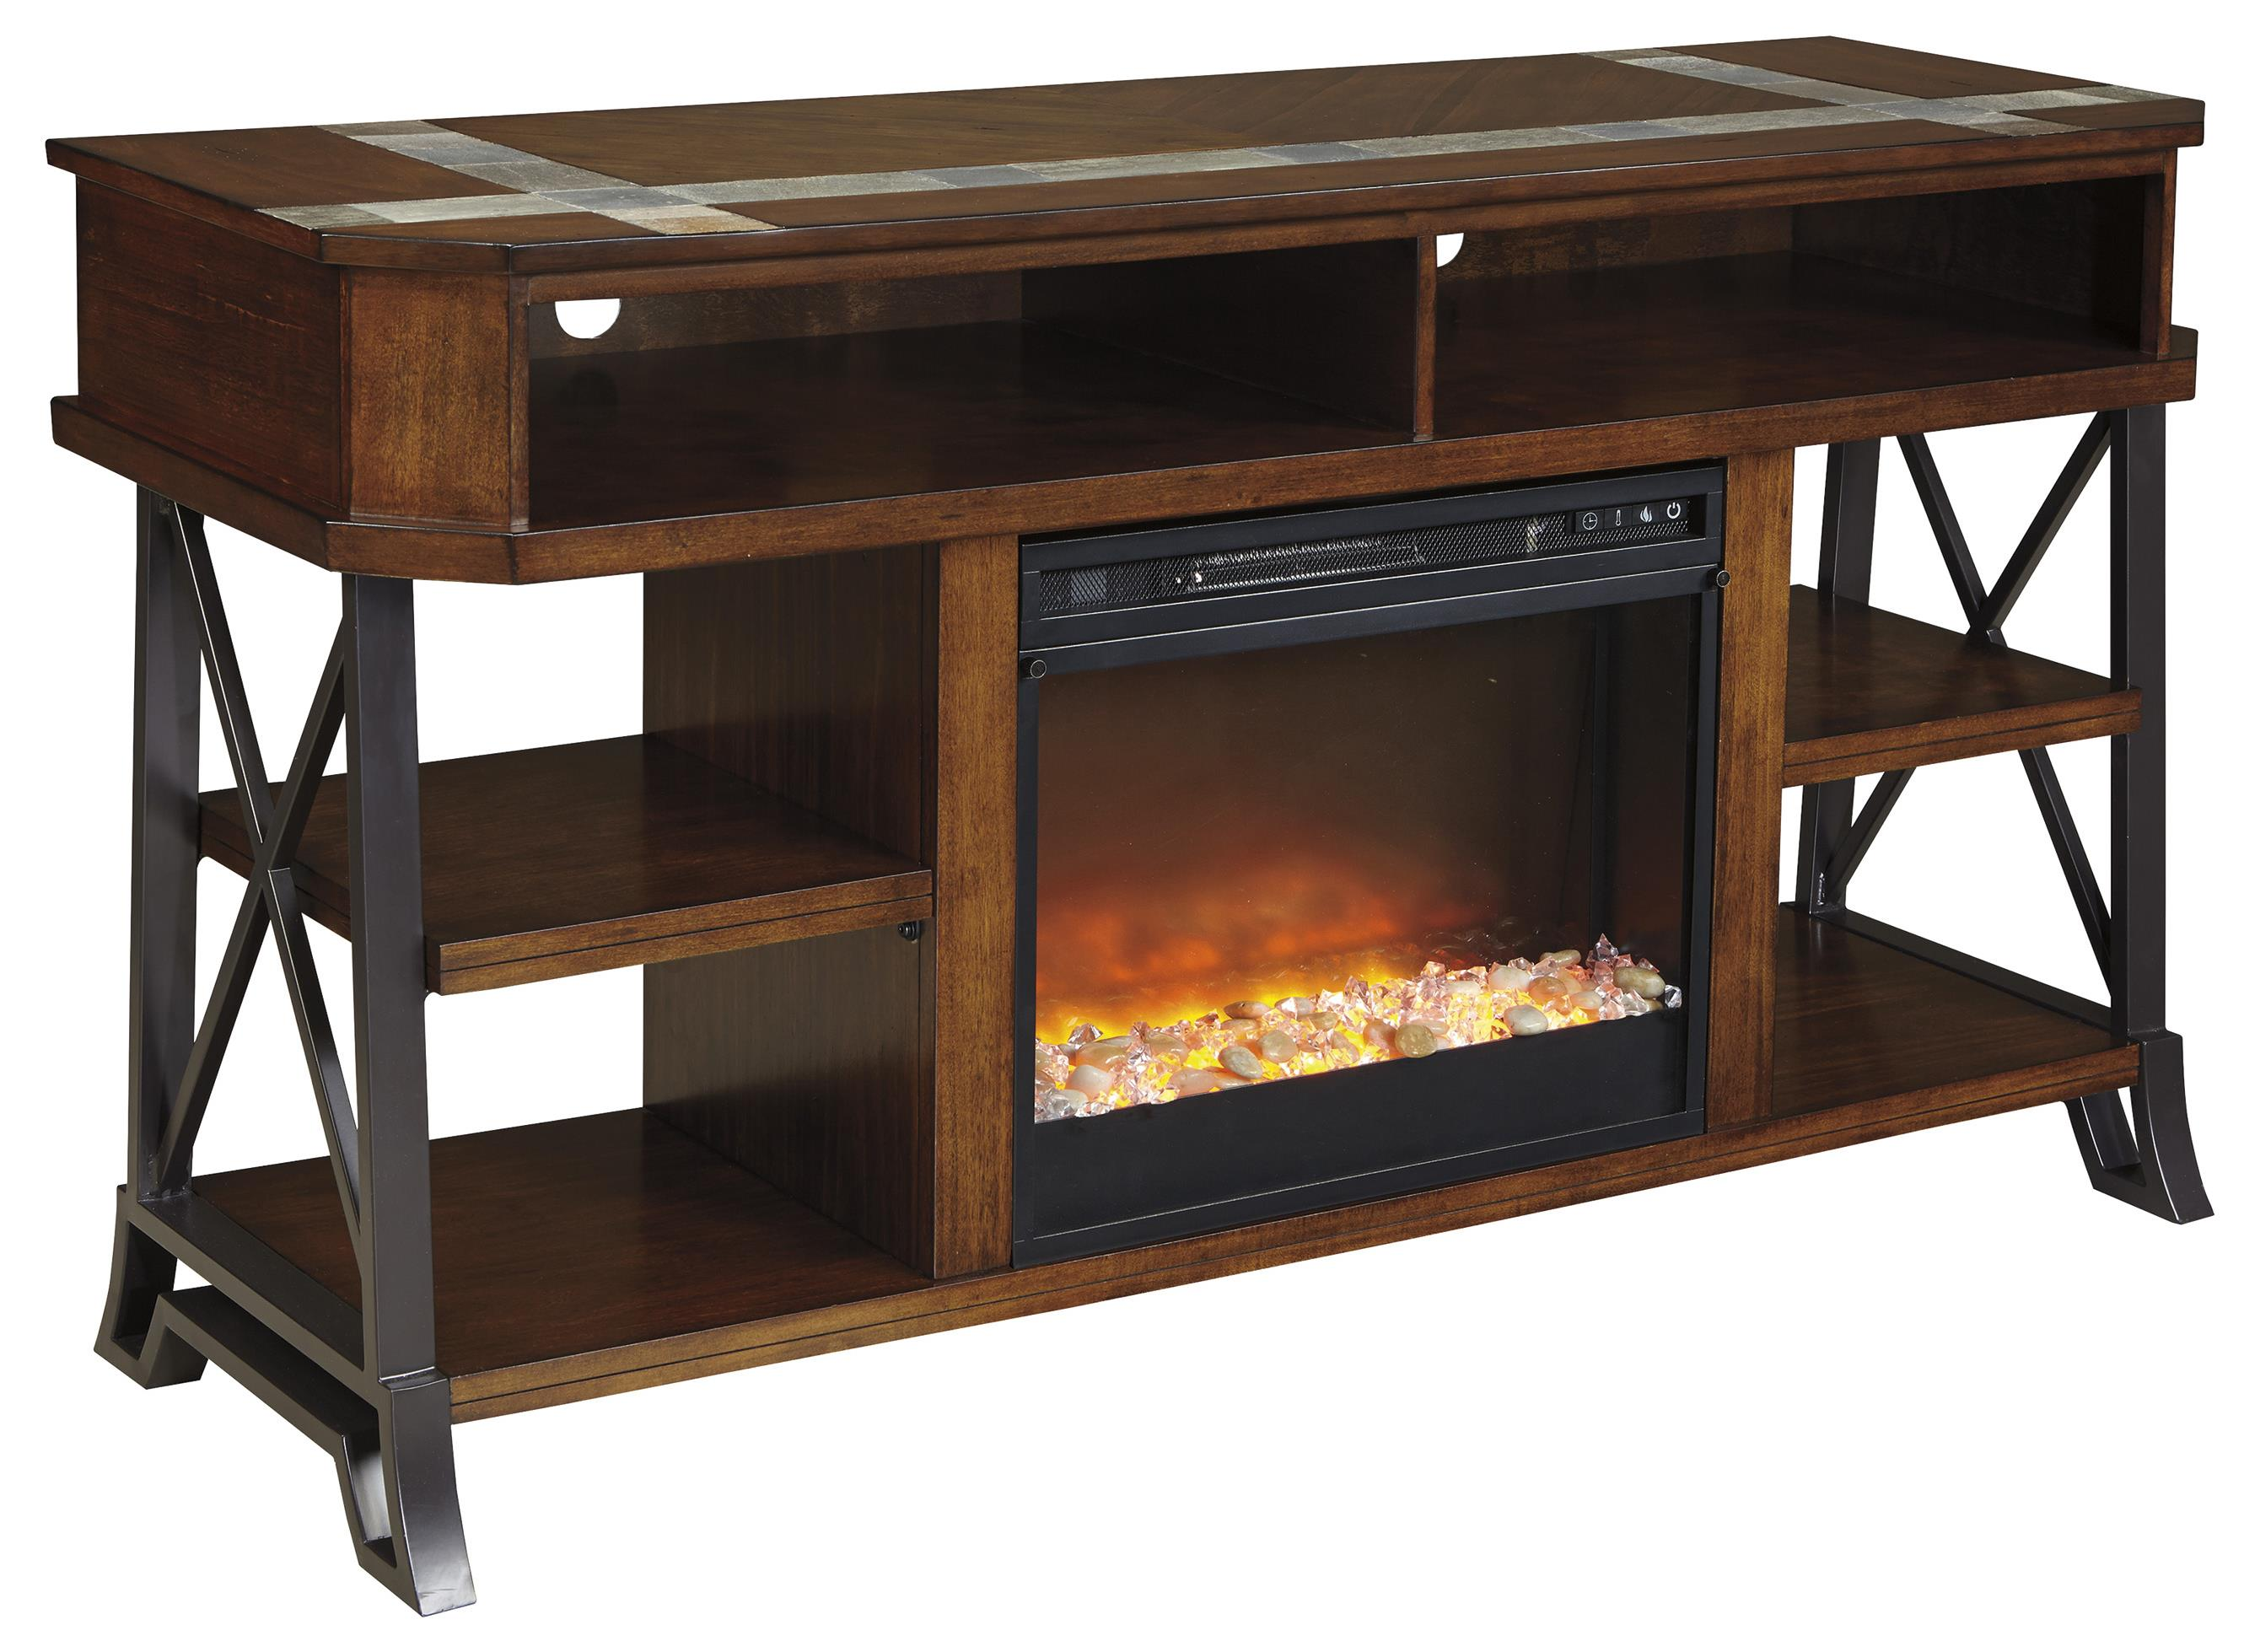 Signature Design by Ashley Vinasville TV Stand with Fireplace Insert - Item Number: W552-68+W100-02